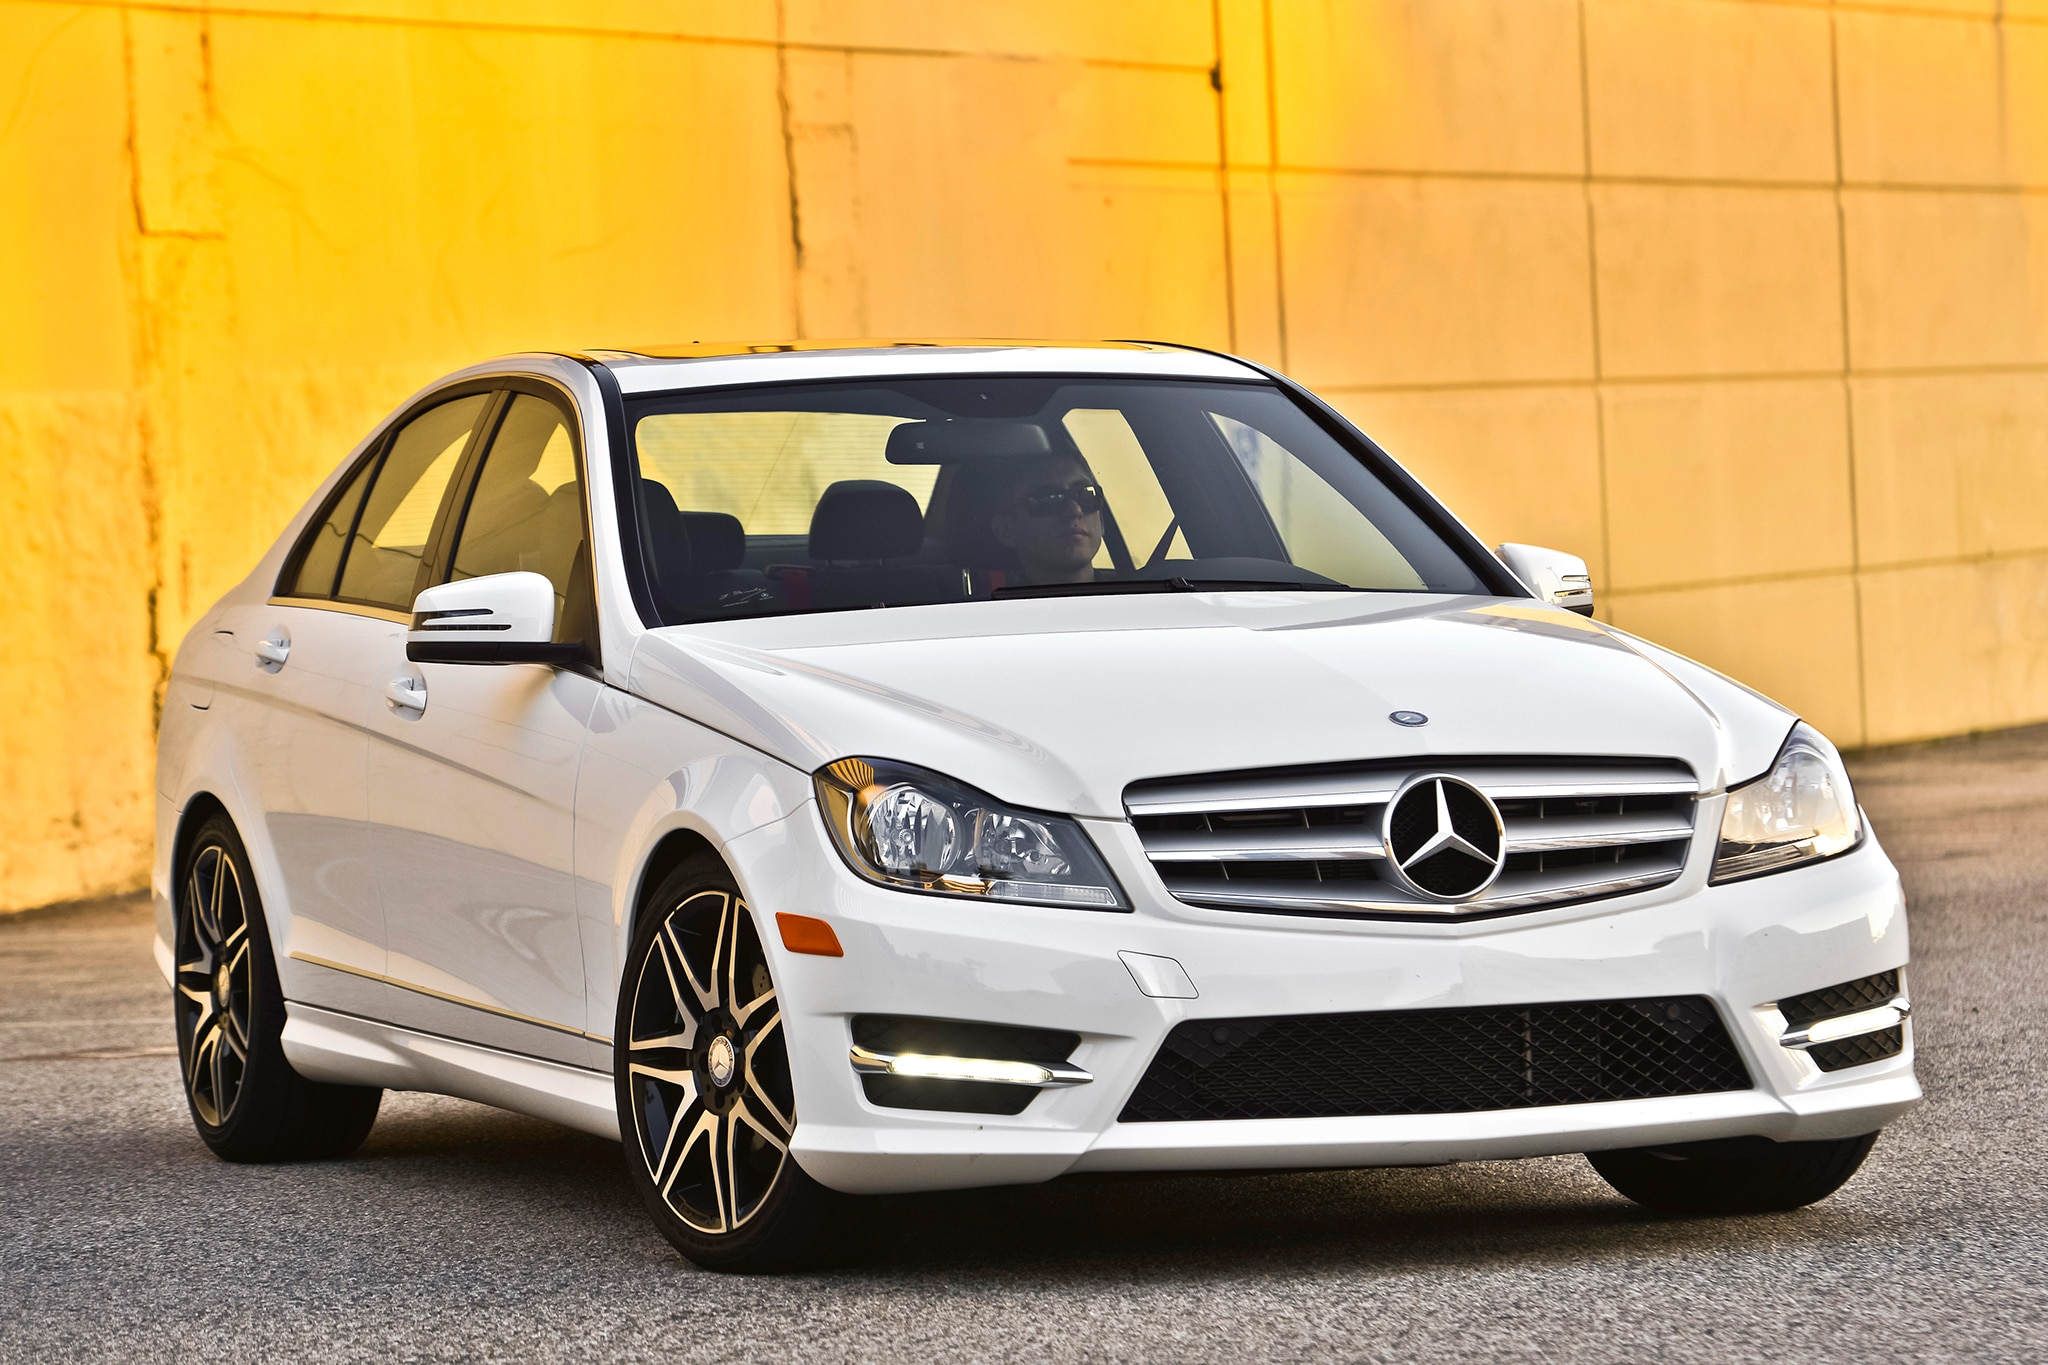 2013 mercedes benz c300 4matic gains power economy m for 2015 mercedes benz c300 4matic